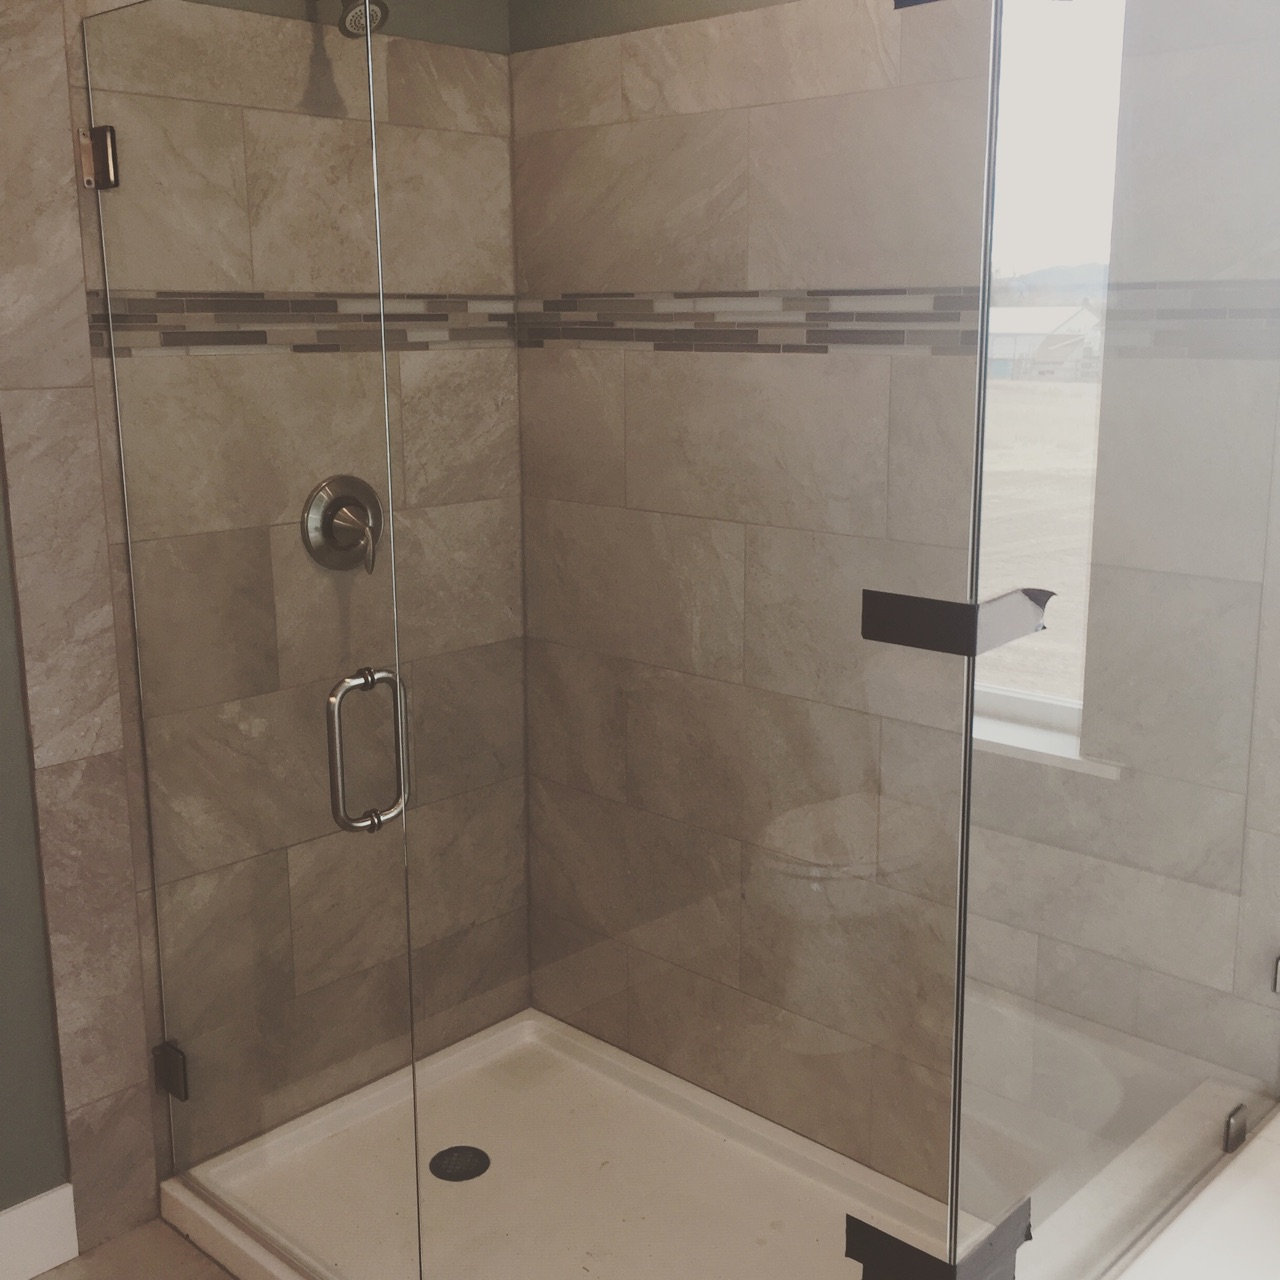 3 panel shower | Chateau Window And Shower Enclosure